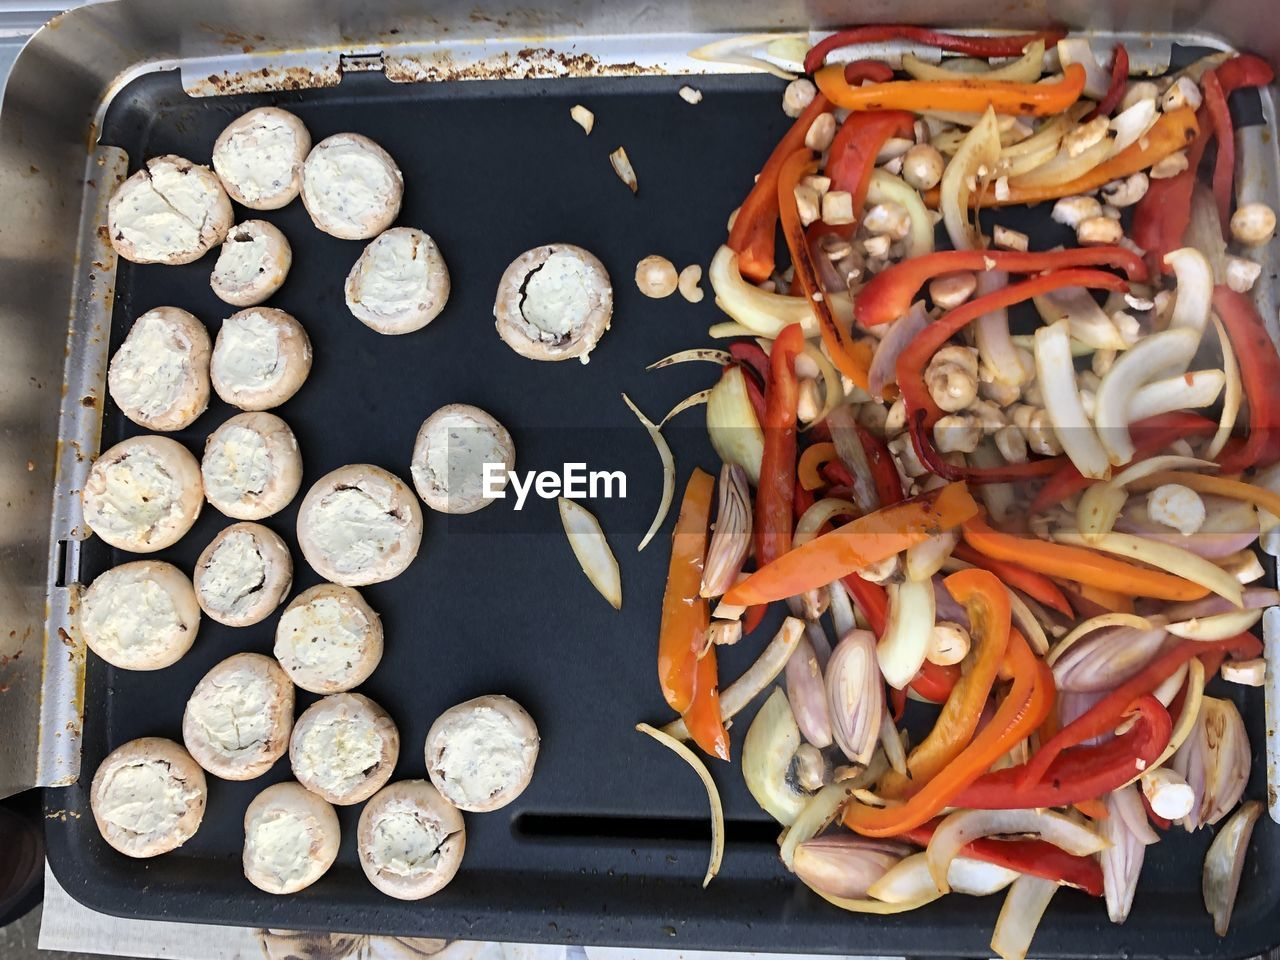 HIGH ANGLE VIEW OF CARROTS ON BARBECUE GRILL